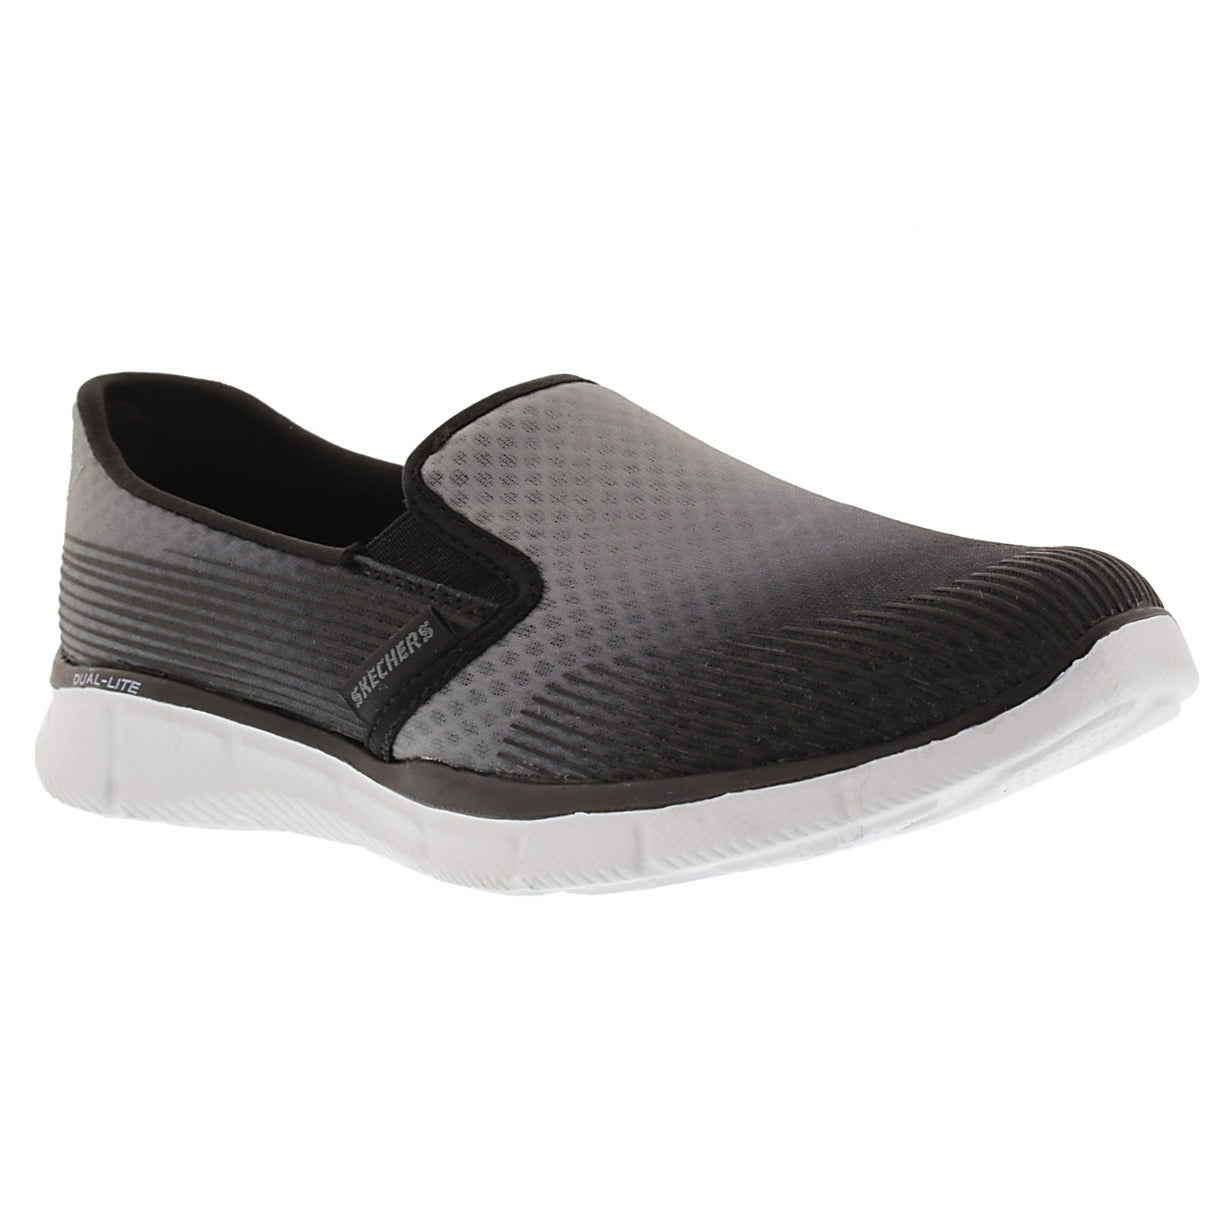 Lds Space Out gry/blk slip on sneaker